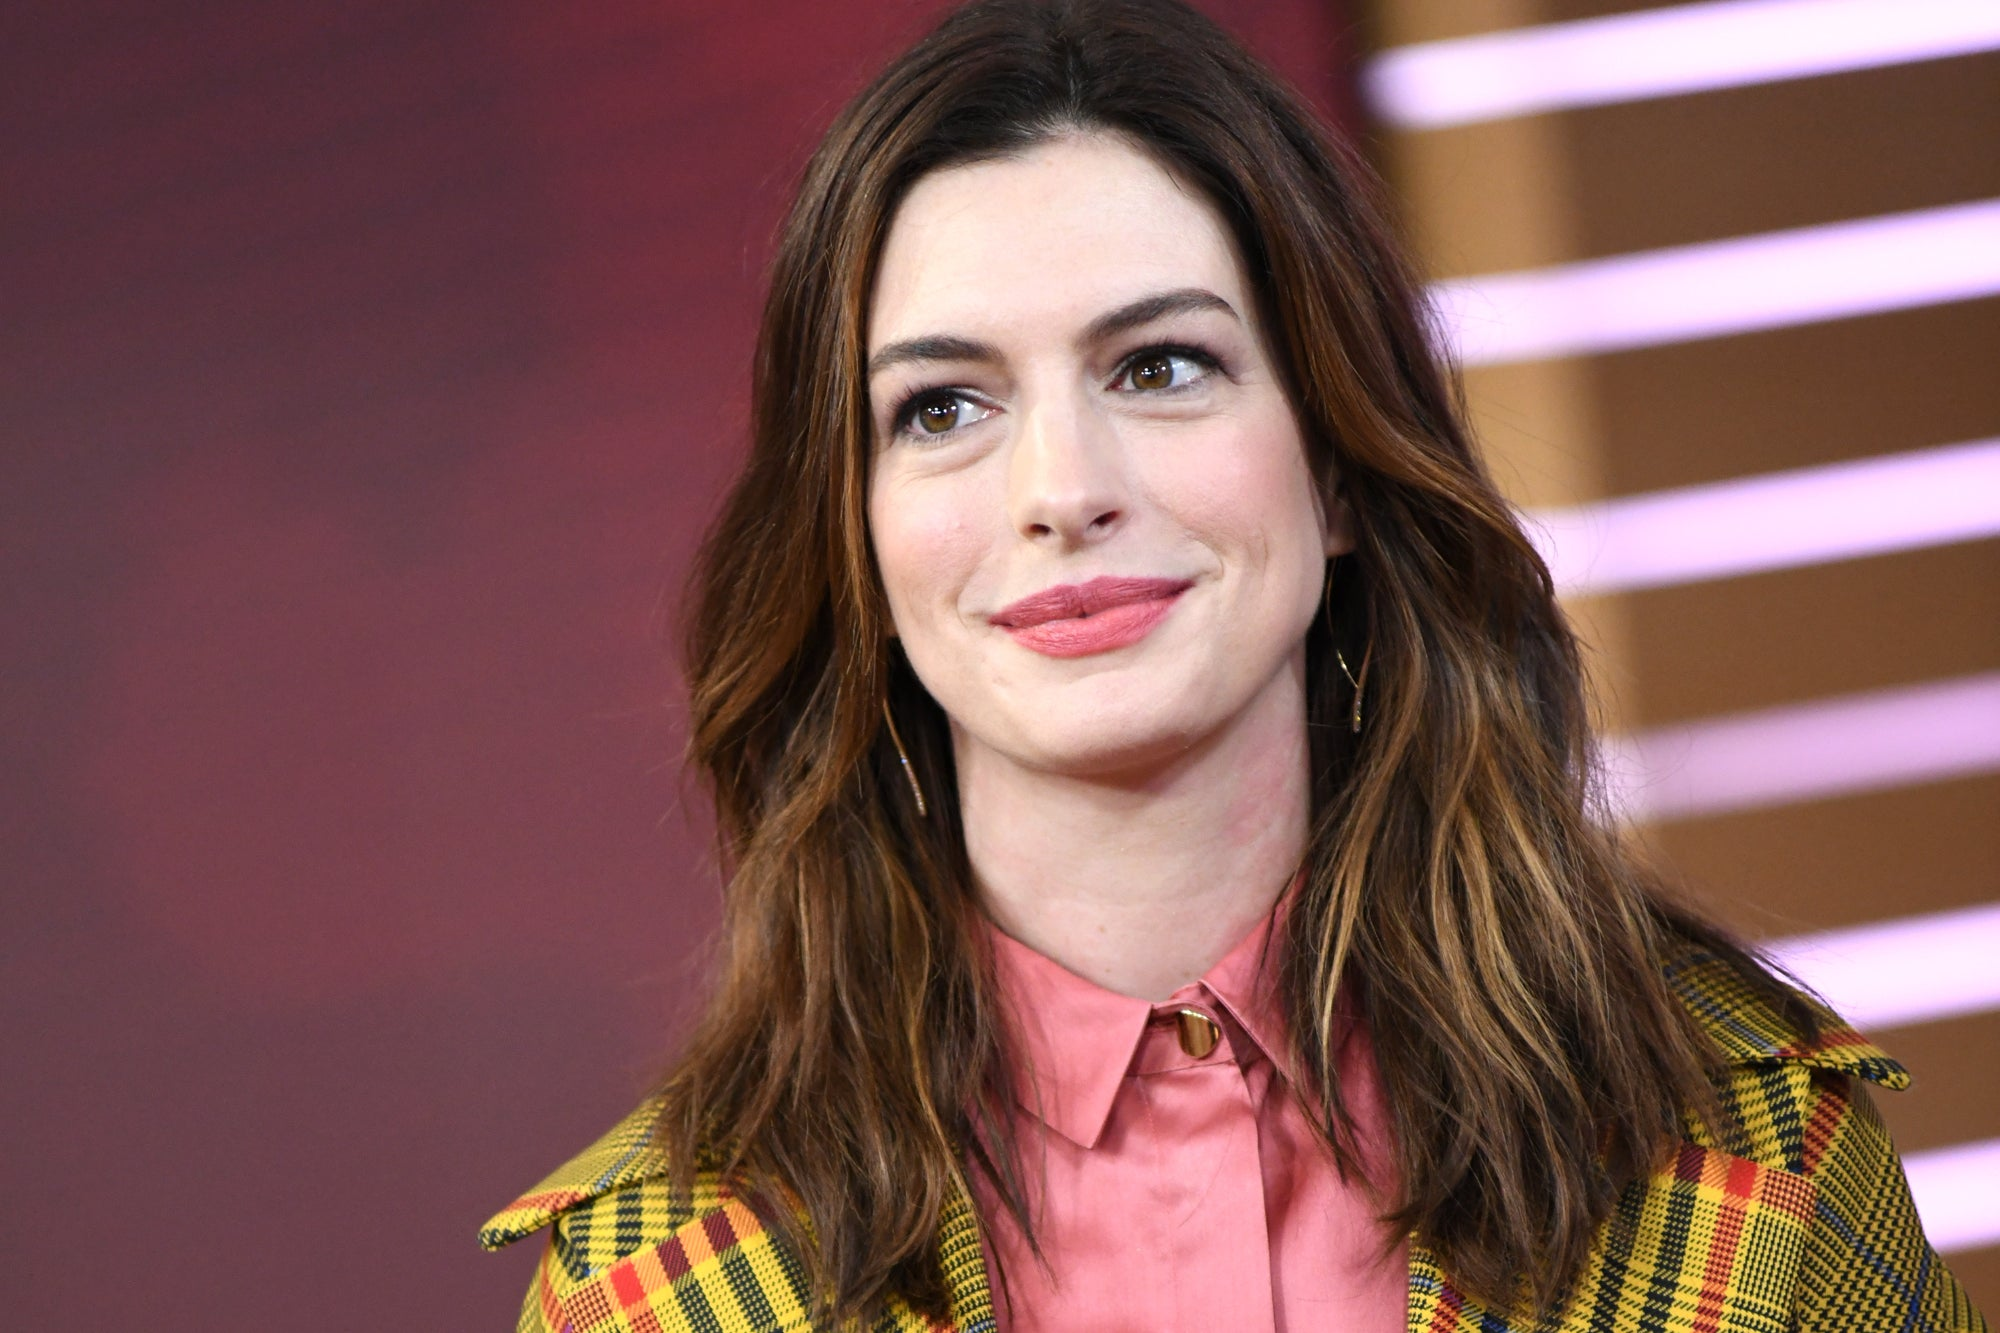 """Anne Hathaway Opens Up About Filming """"The Witches"""" While Pregnant"""